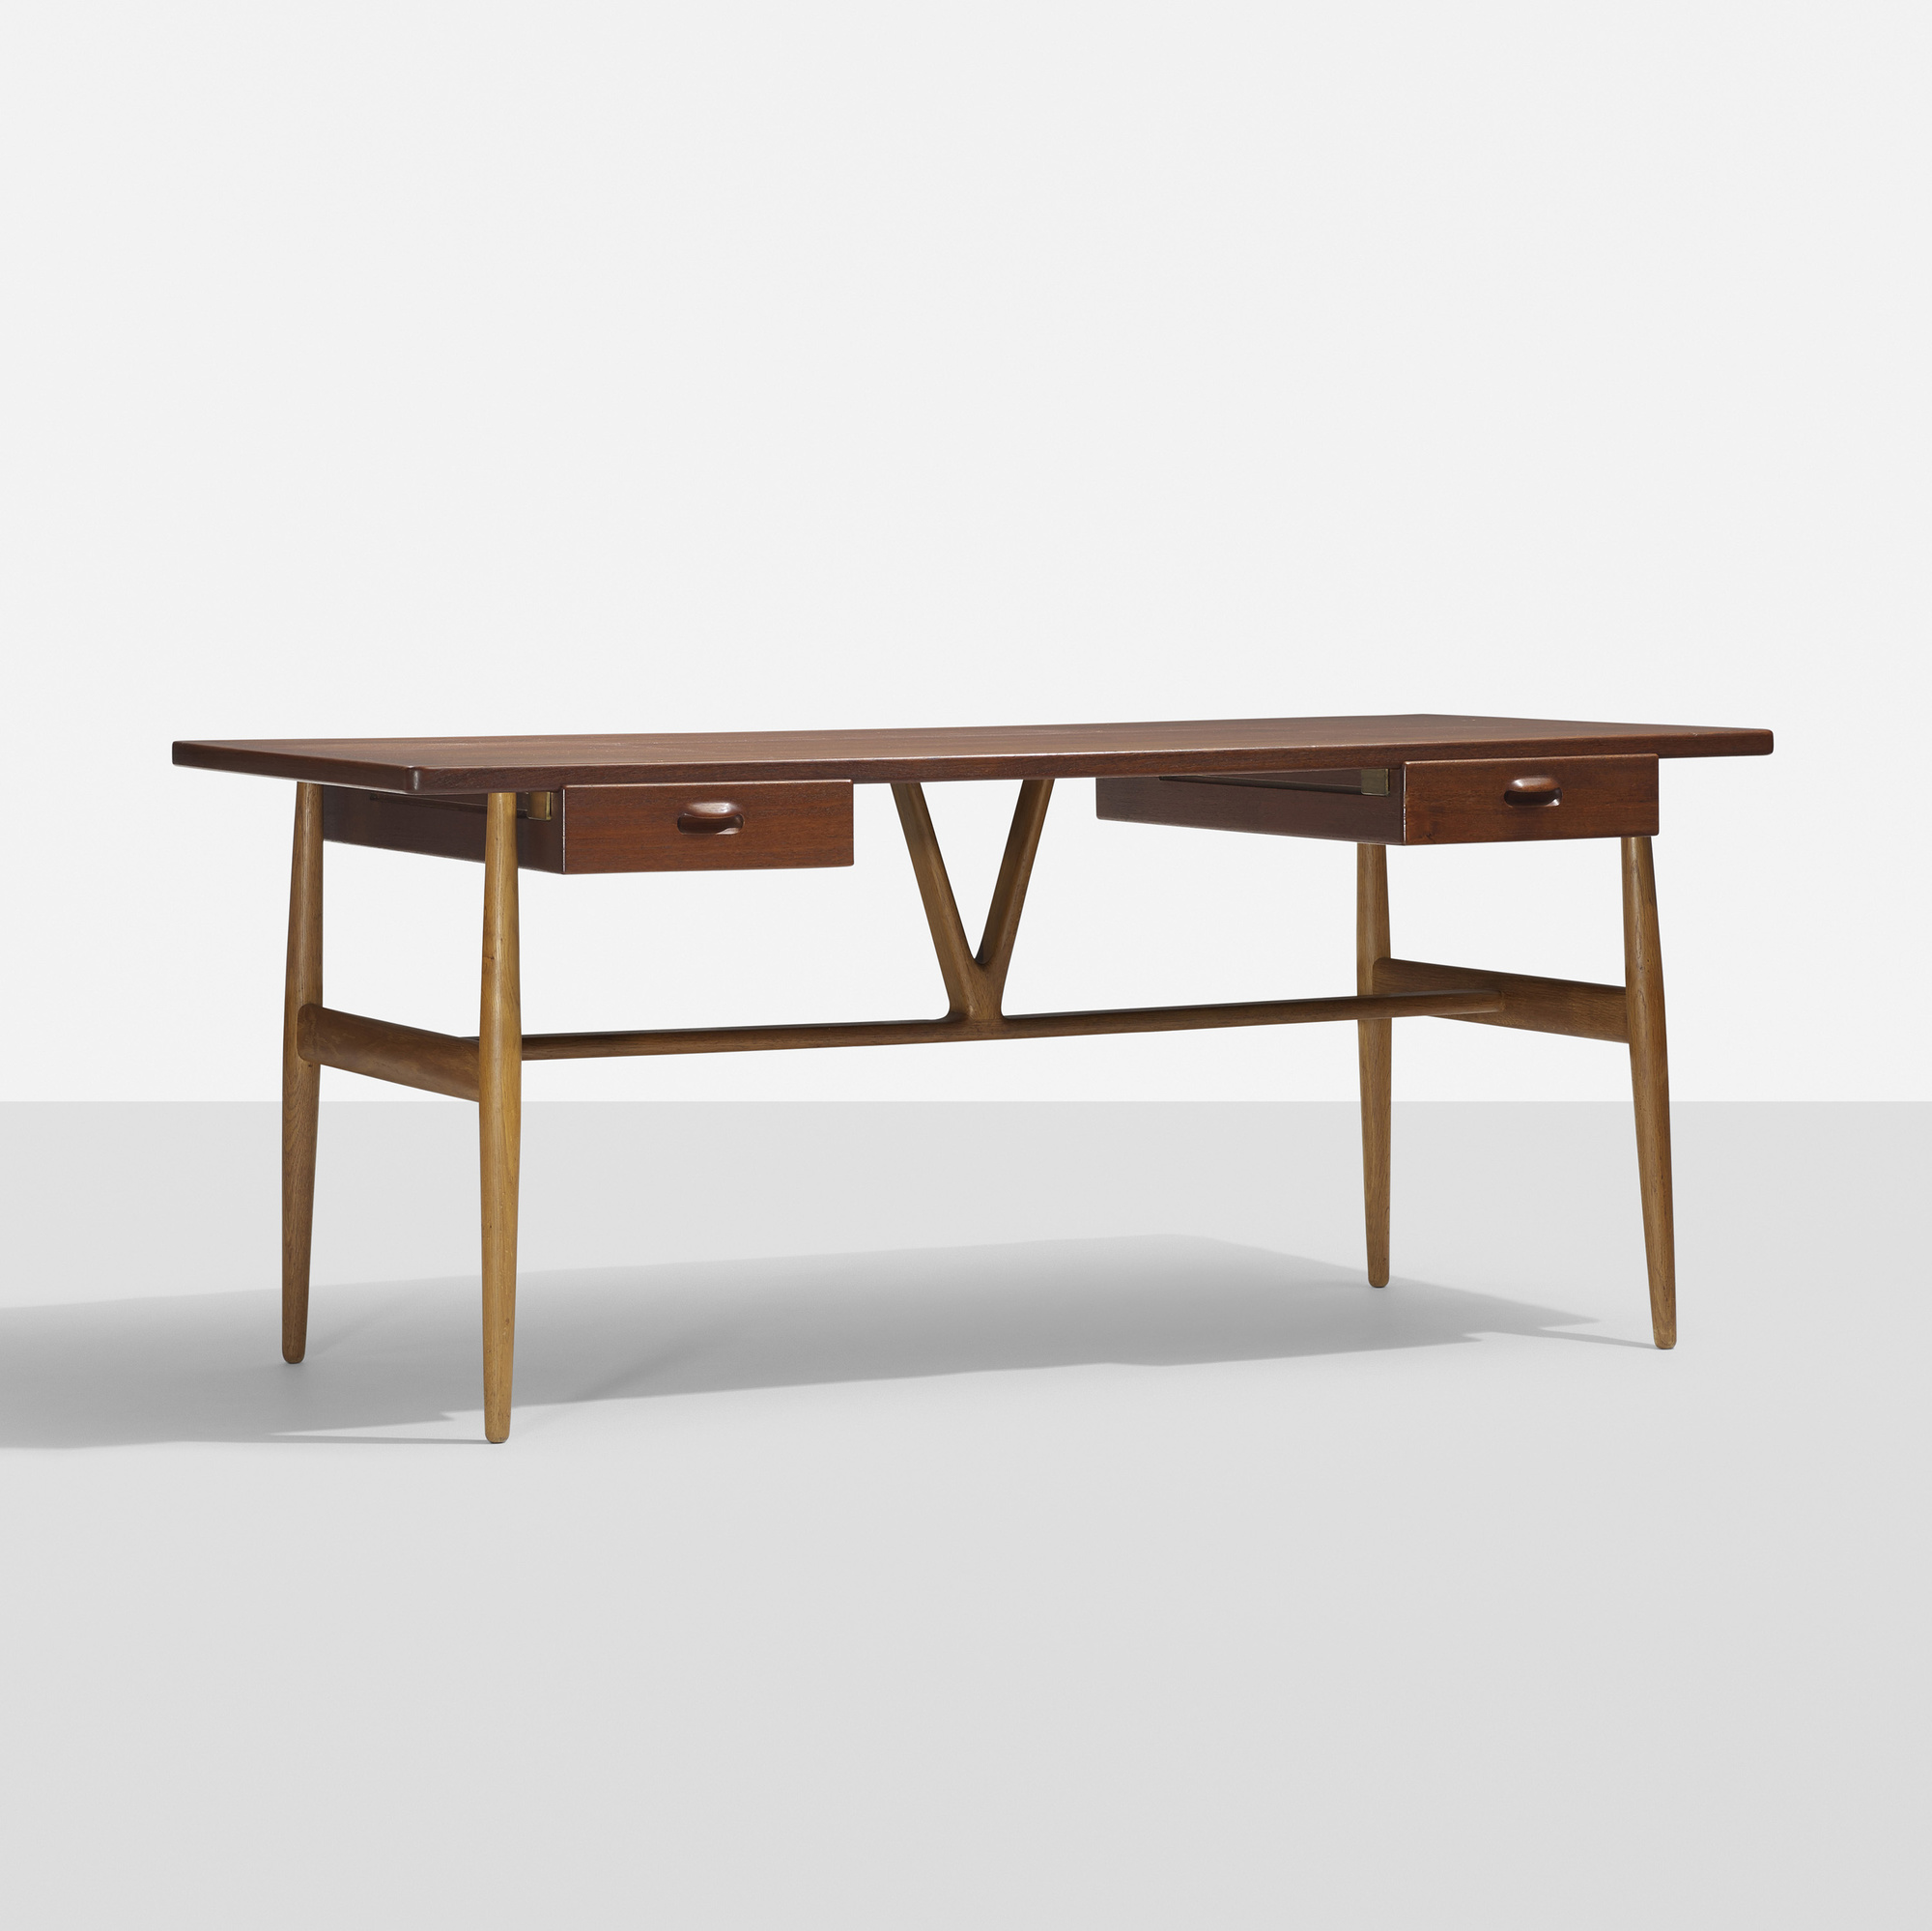 189 Hans J Wegner Desk Model Jh563 1 Of 5